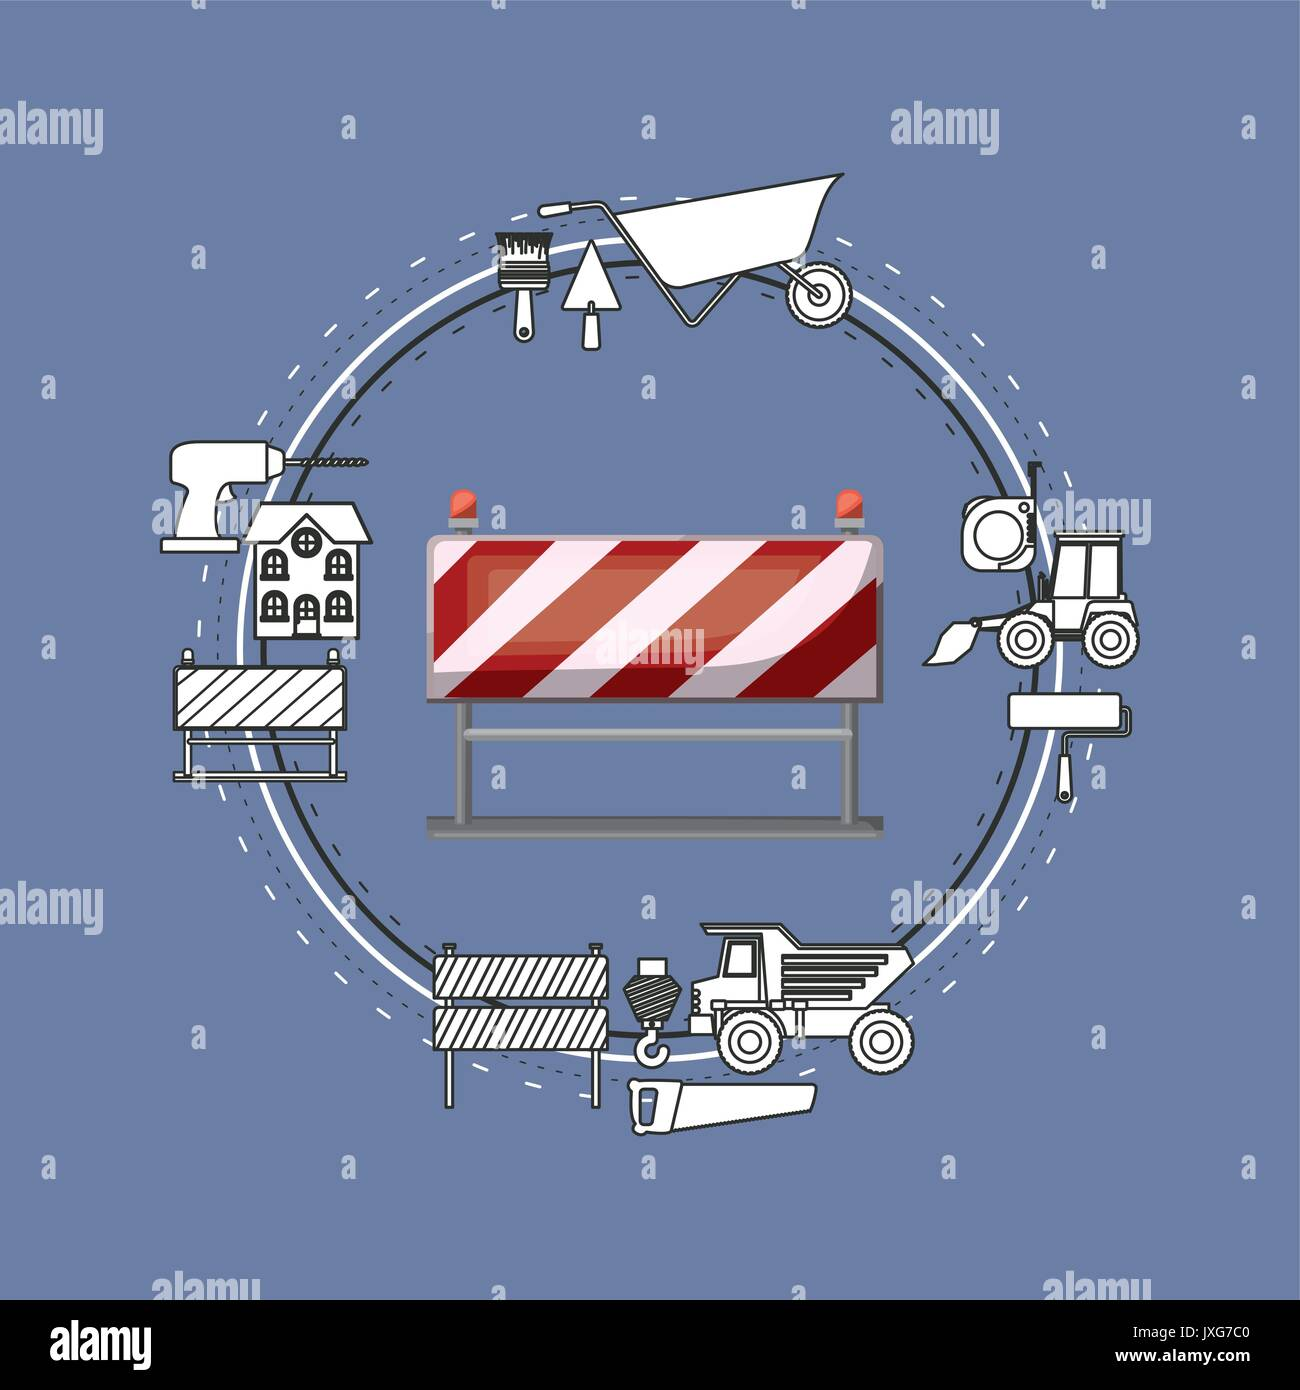 Caution Tape House Stock Photos  Caution Tape House Stock Images  Alamy